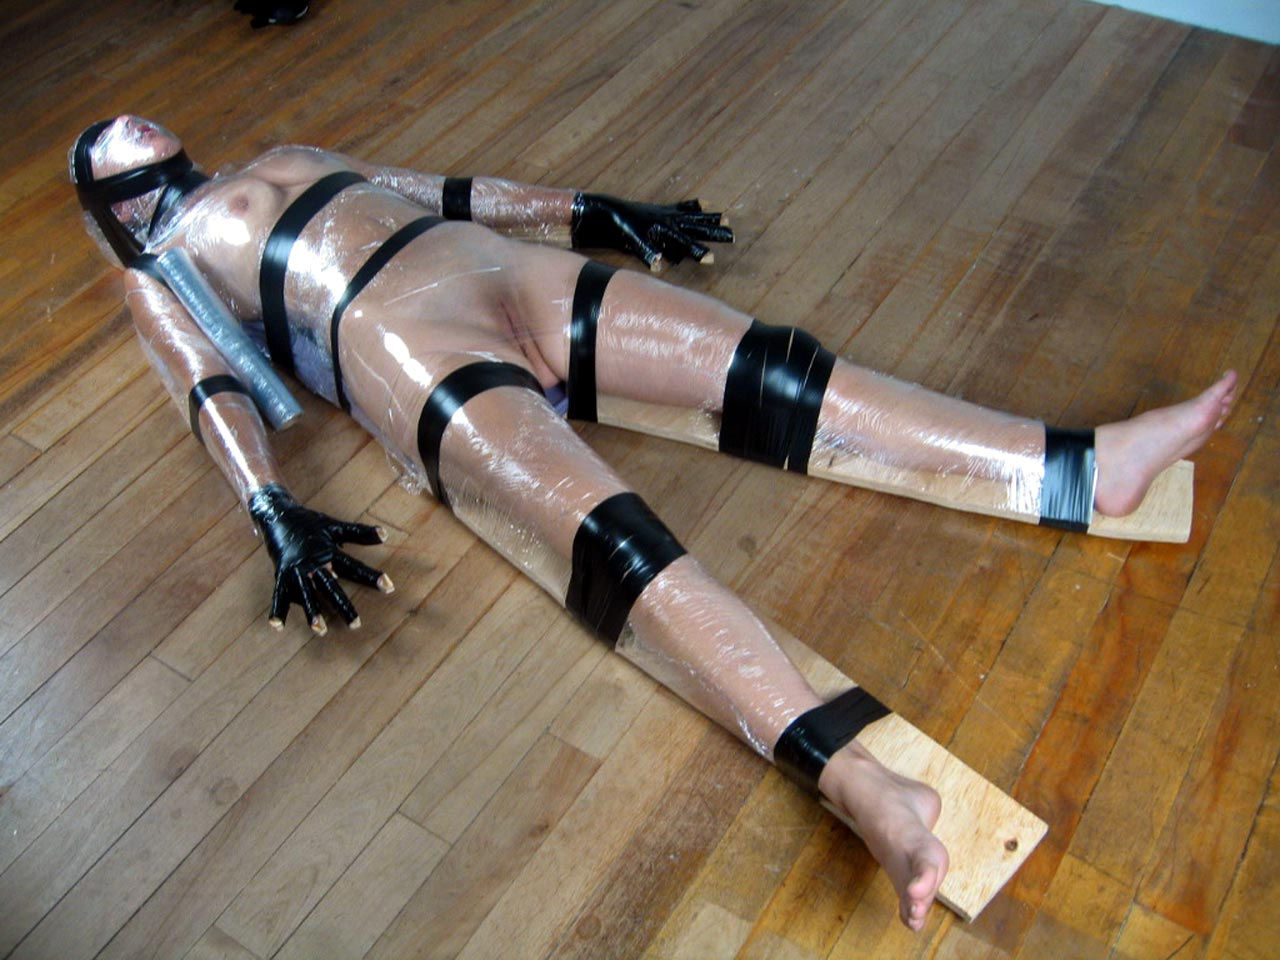 Remarkable, this Wrap bondage girl how